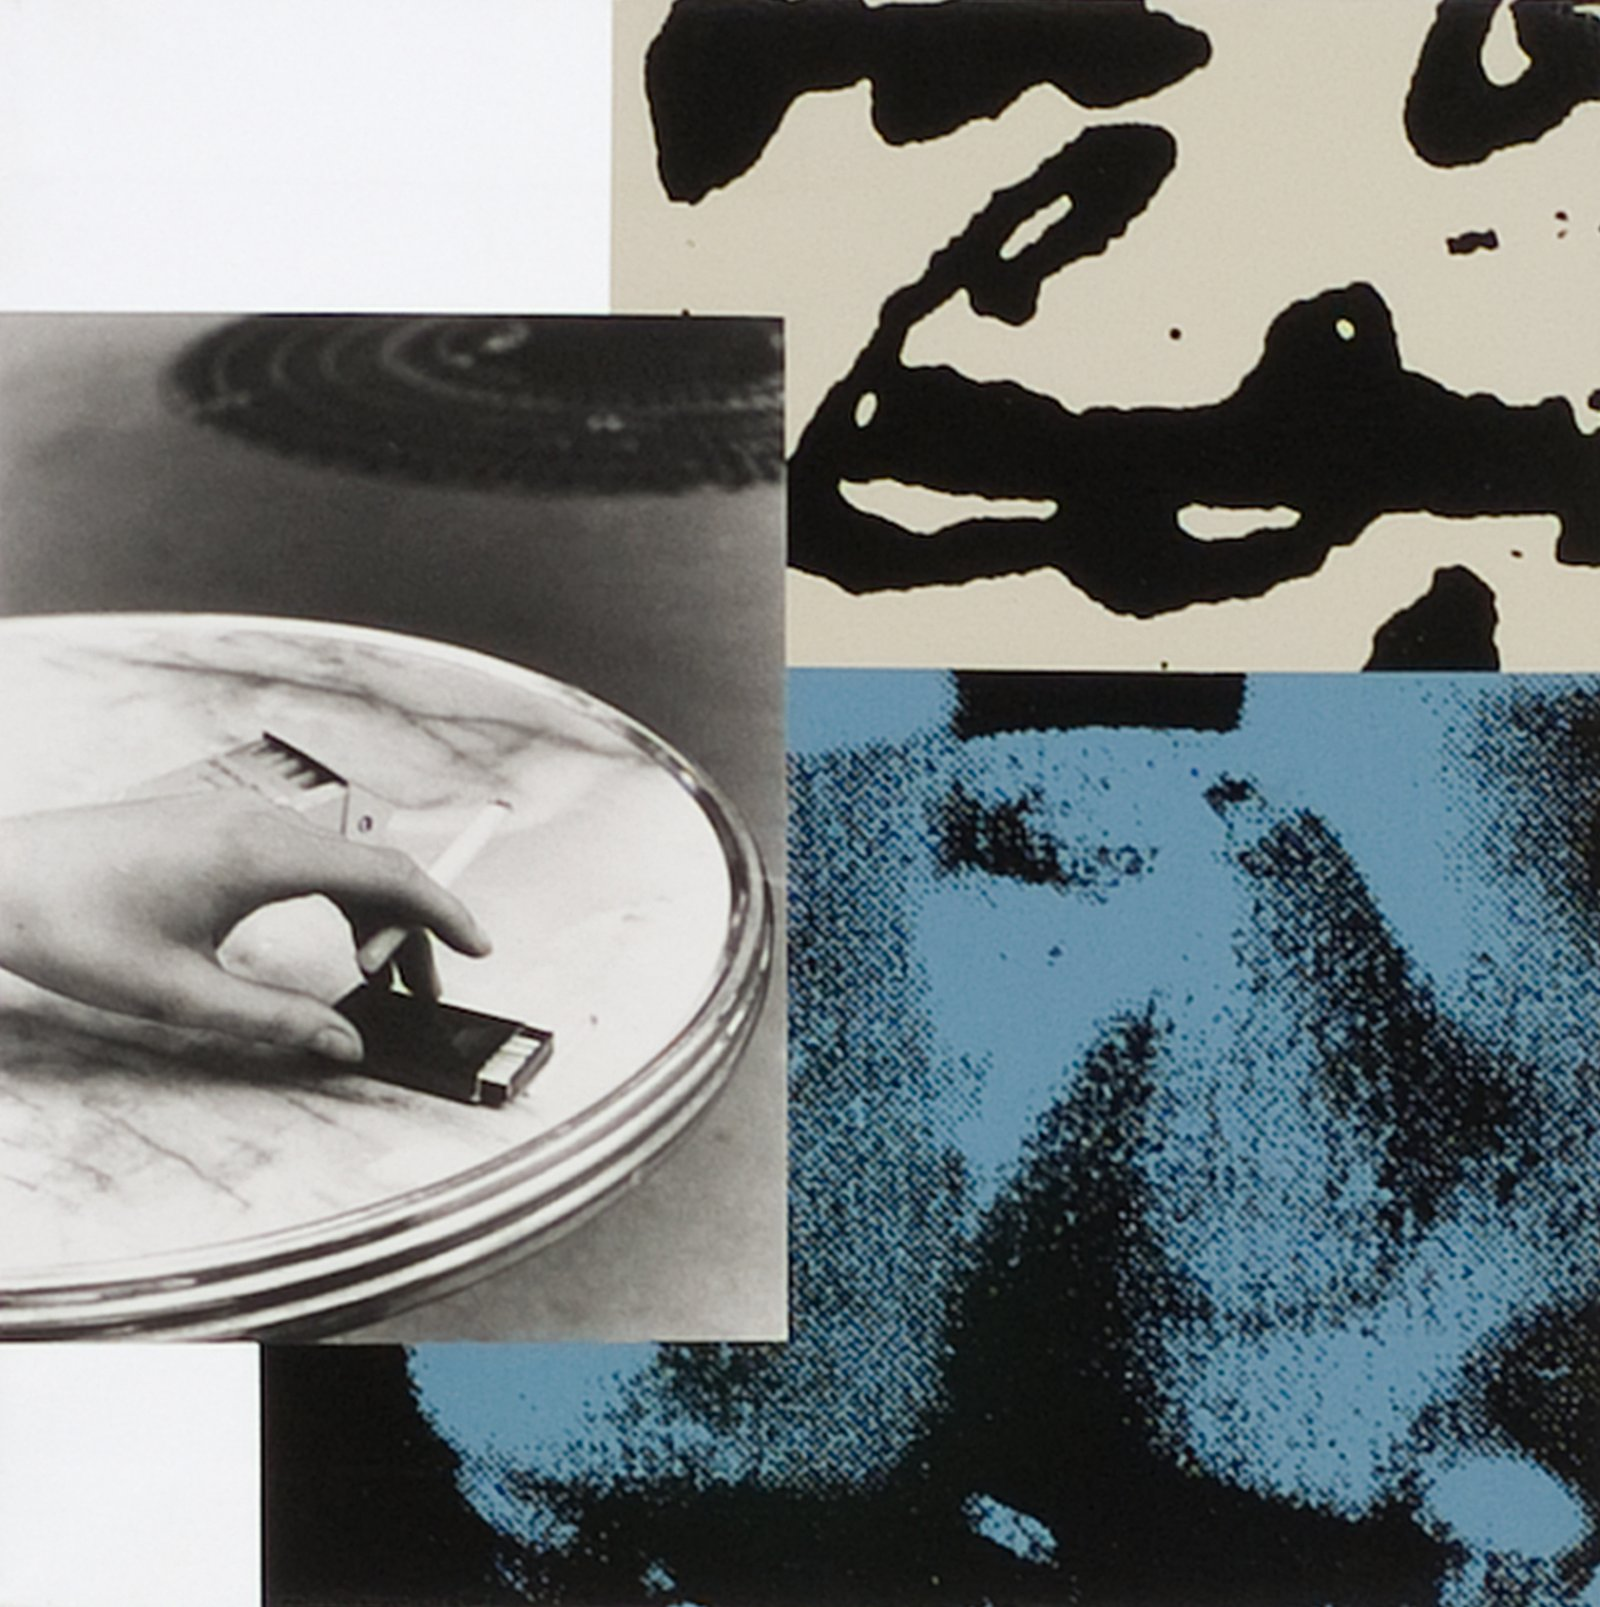 Ian Wallace, Tropismes XIII, 1995, photolaminate with ink serigraph and acrylic on canvas, 24 x 24 in. (61 x 61 cm). Installation view, A Literature of Images, Kunsthalle Zürich, 2008 by Ian Wallace